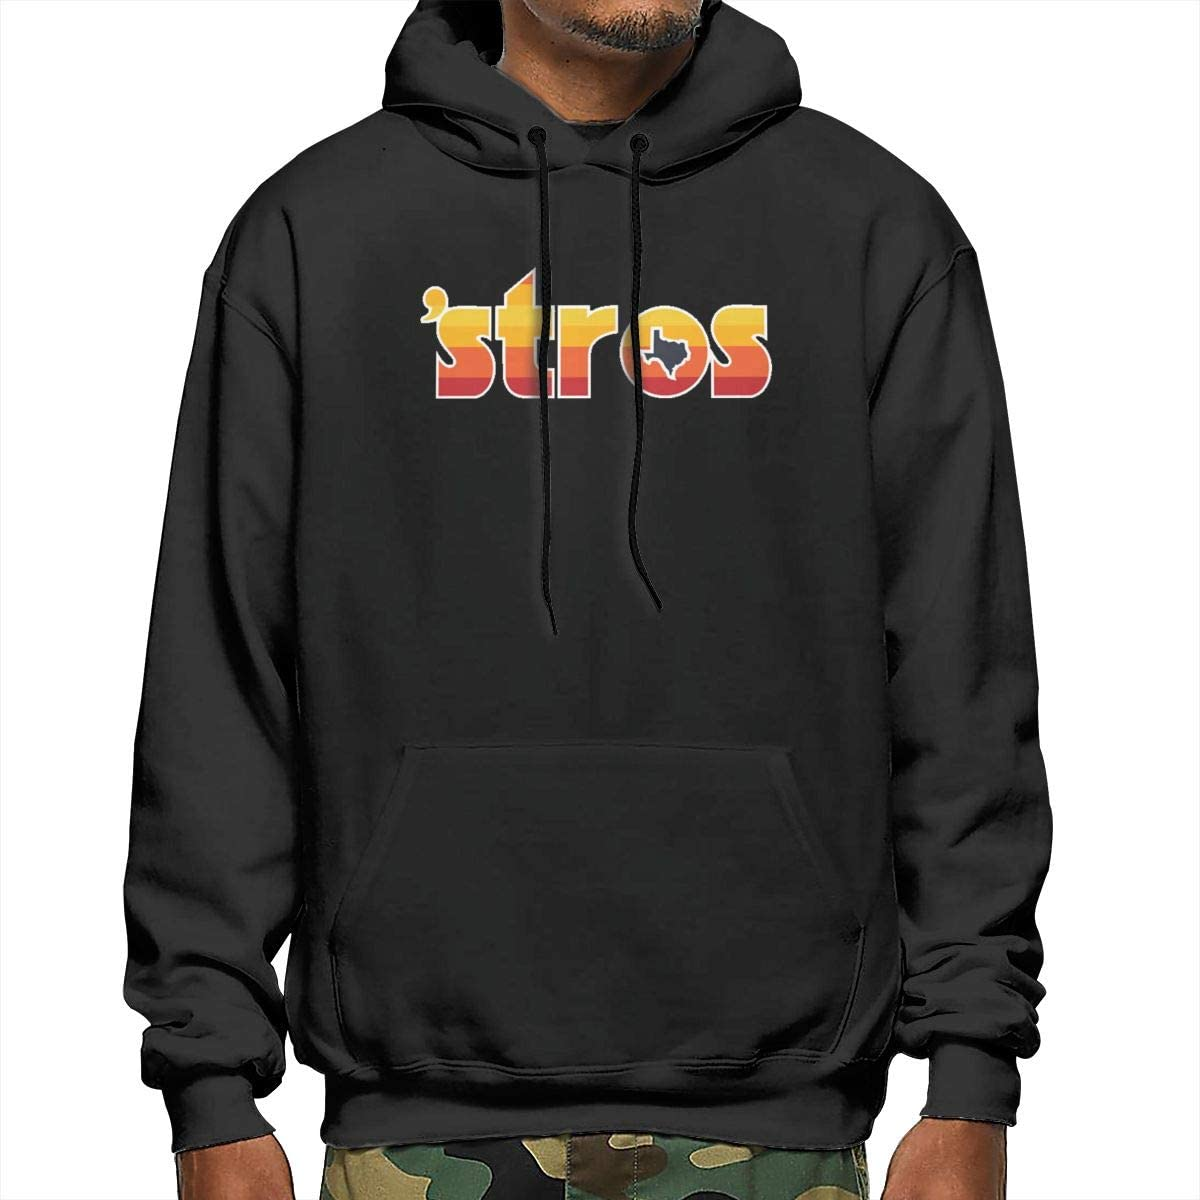 Astro Inspired Stros Throwback Pullover Hoodie Sweatshirt Mens Performance Active T-Shirt Hoodie